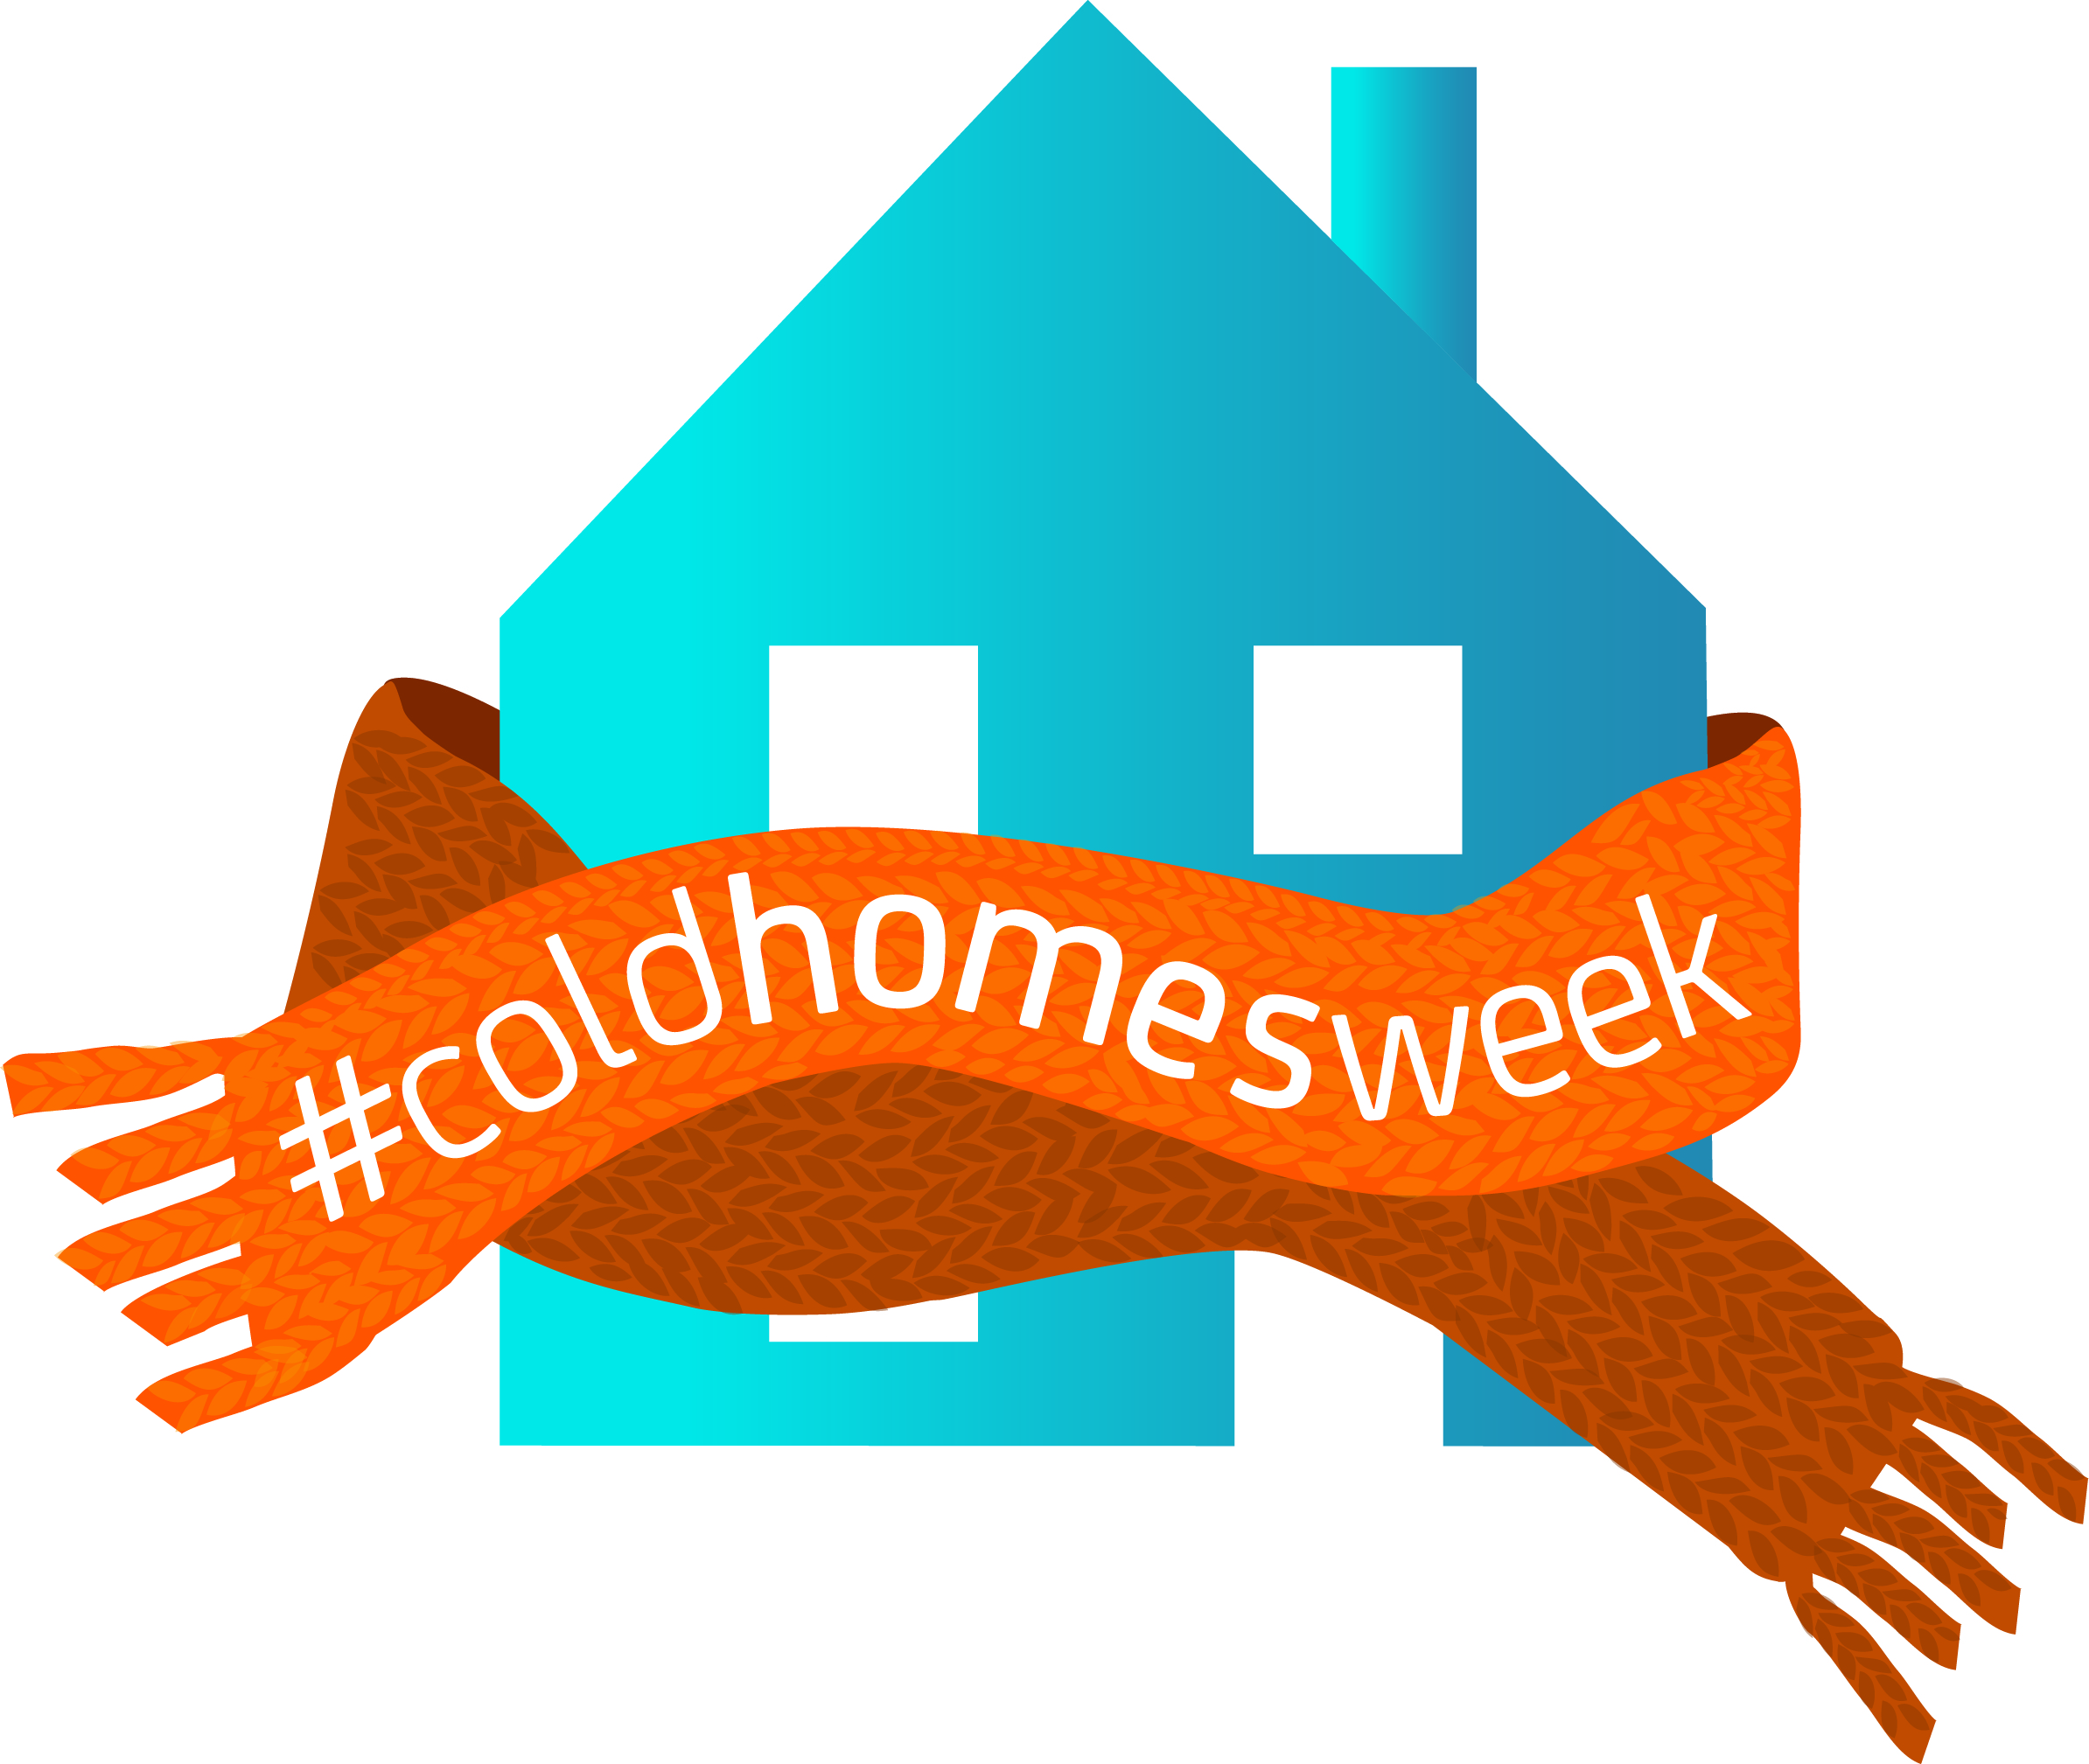 Cold Homes Week 2014